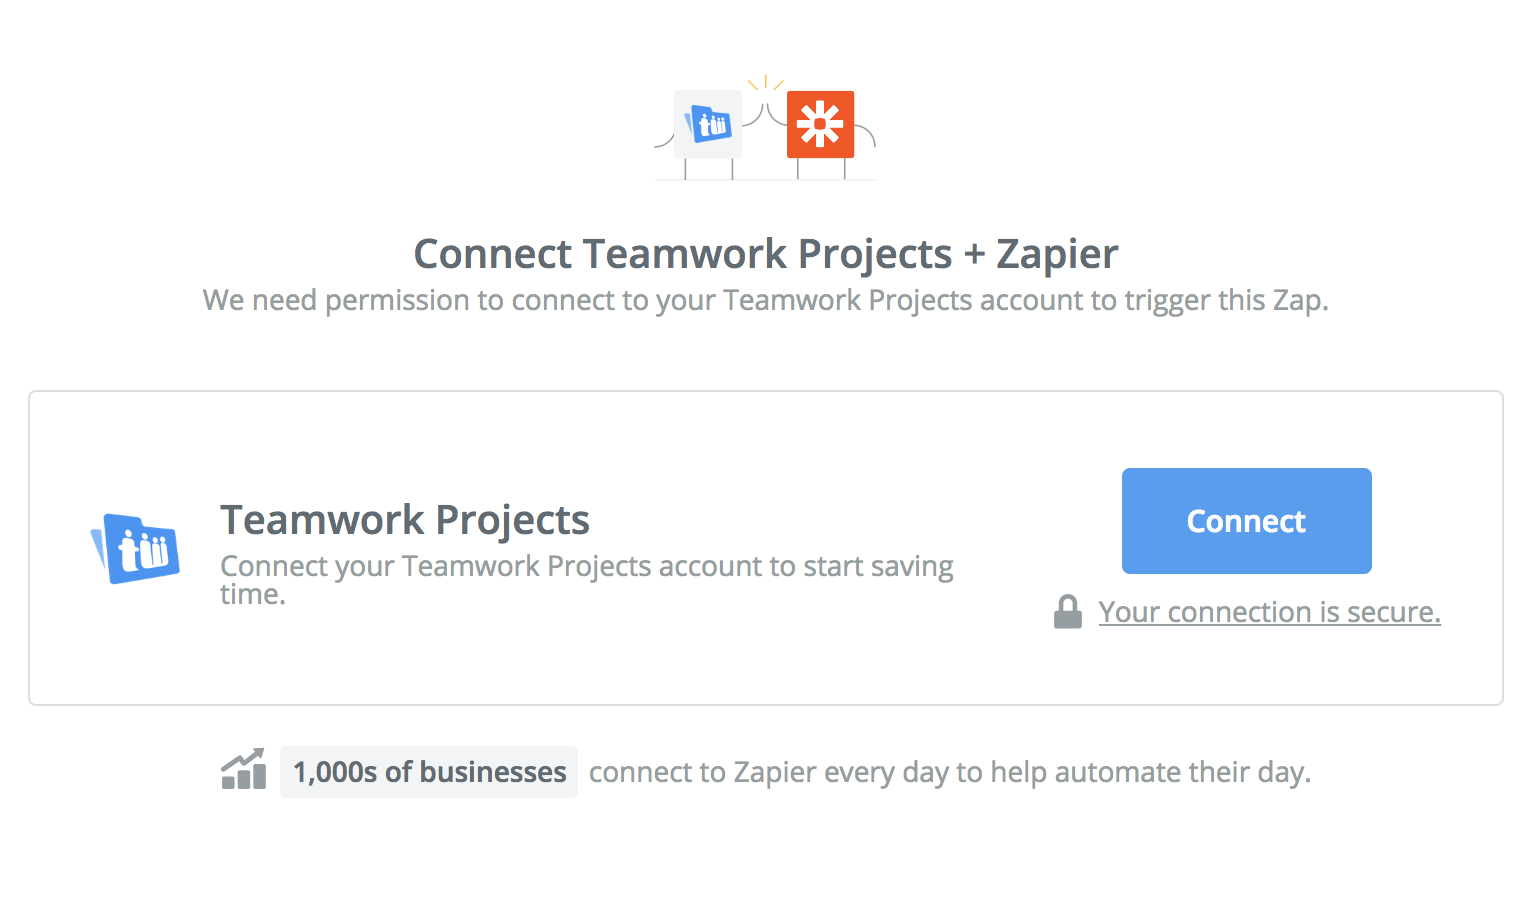 Click to connect Teamwork Projects